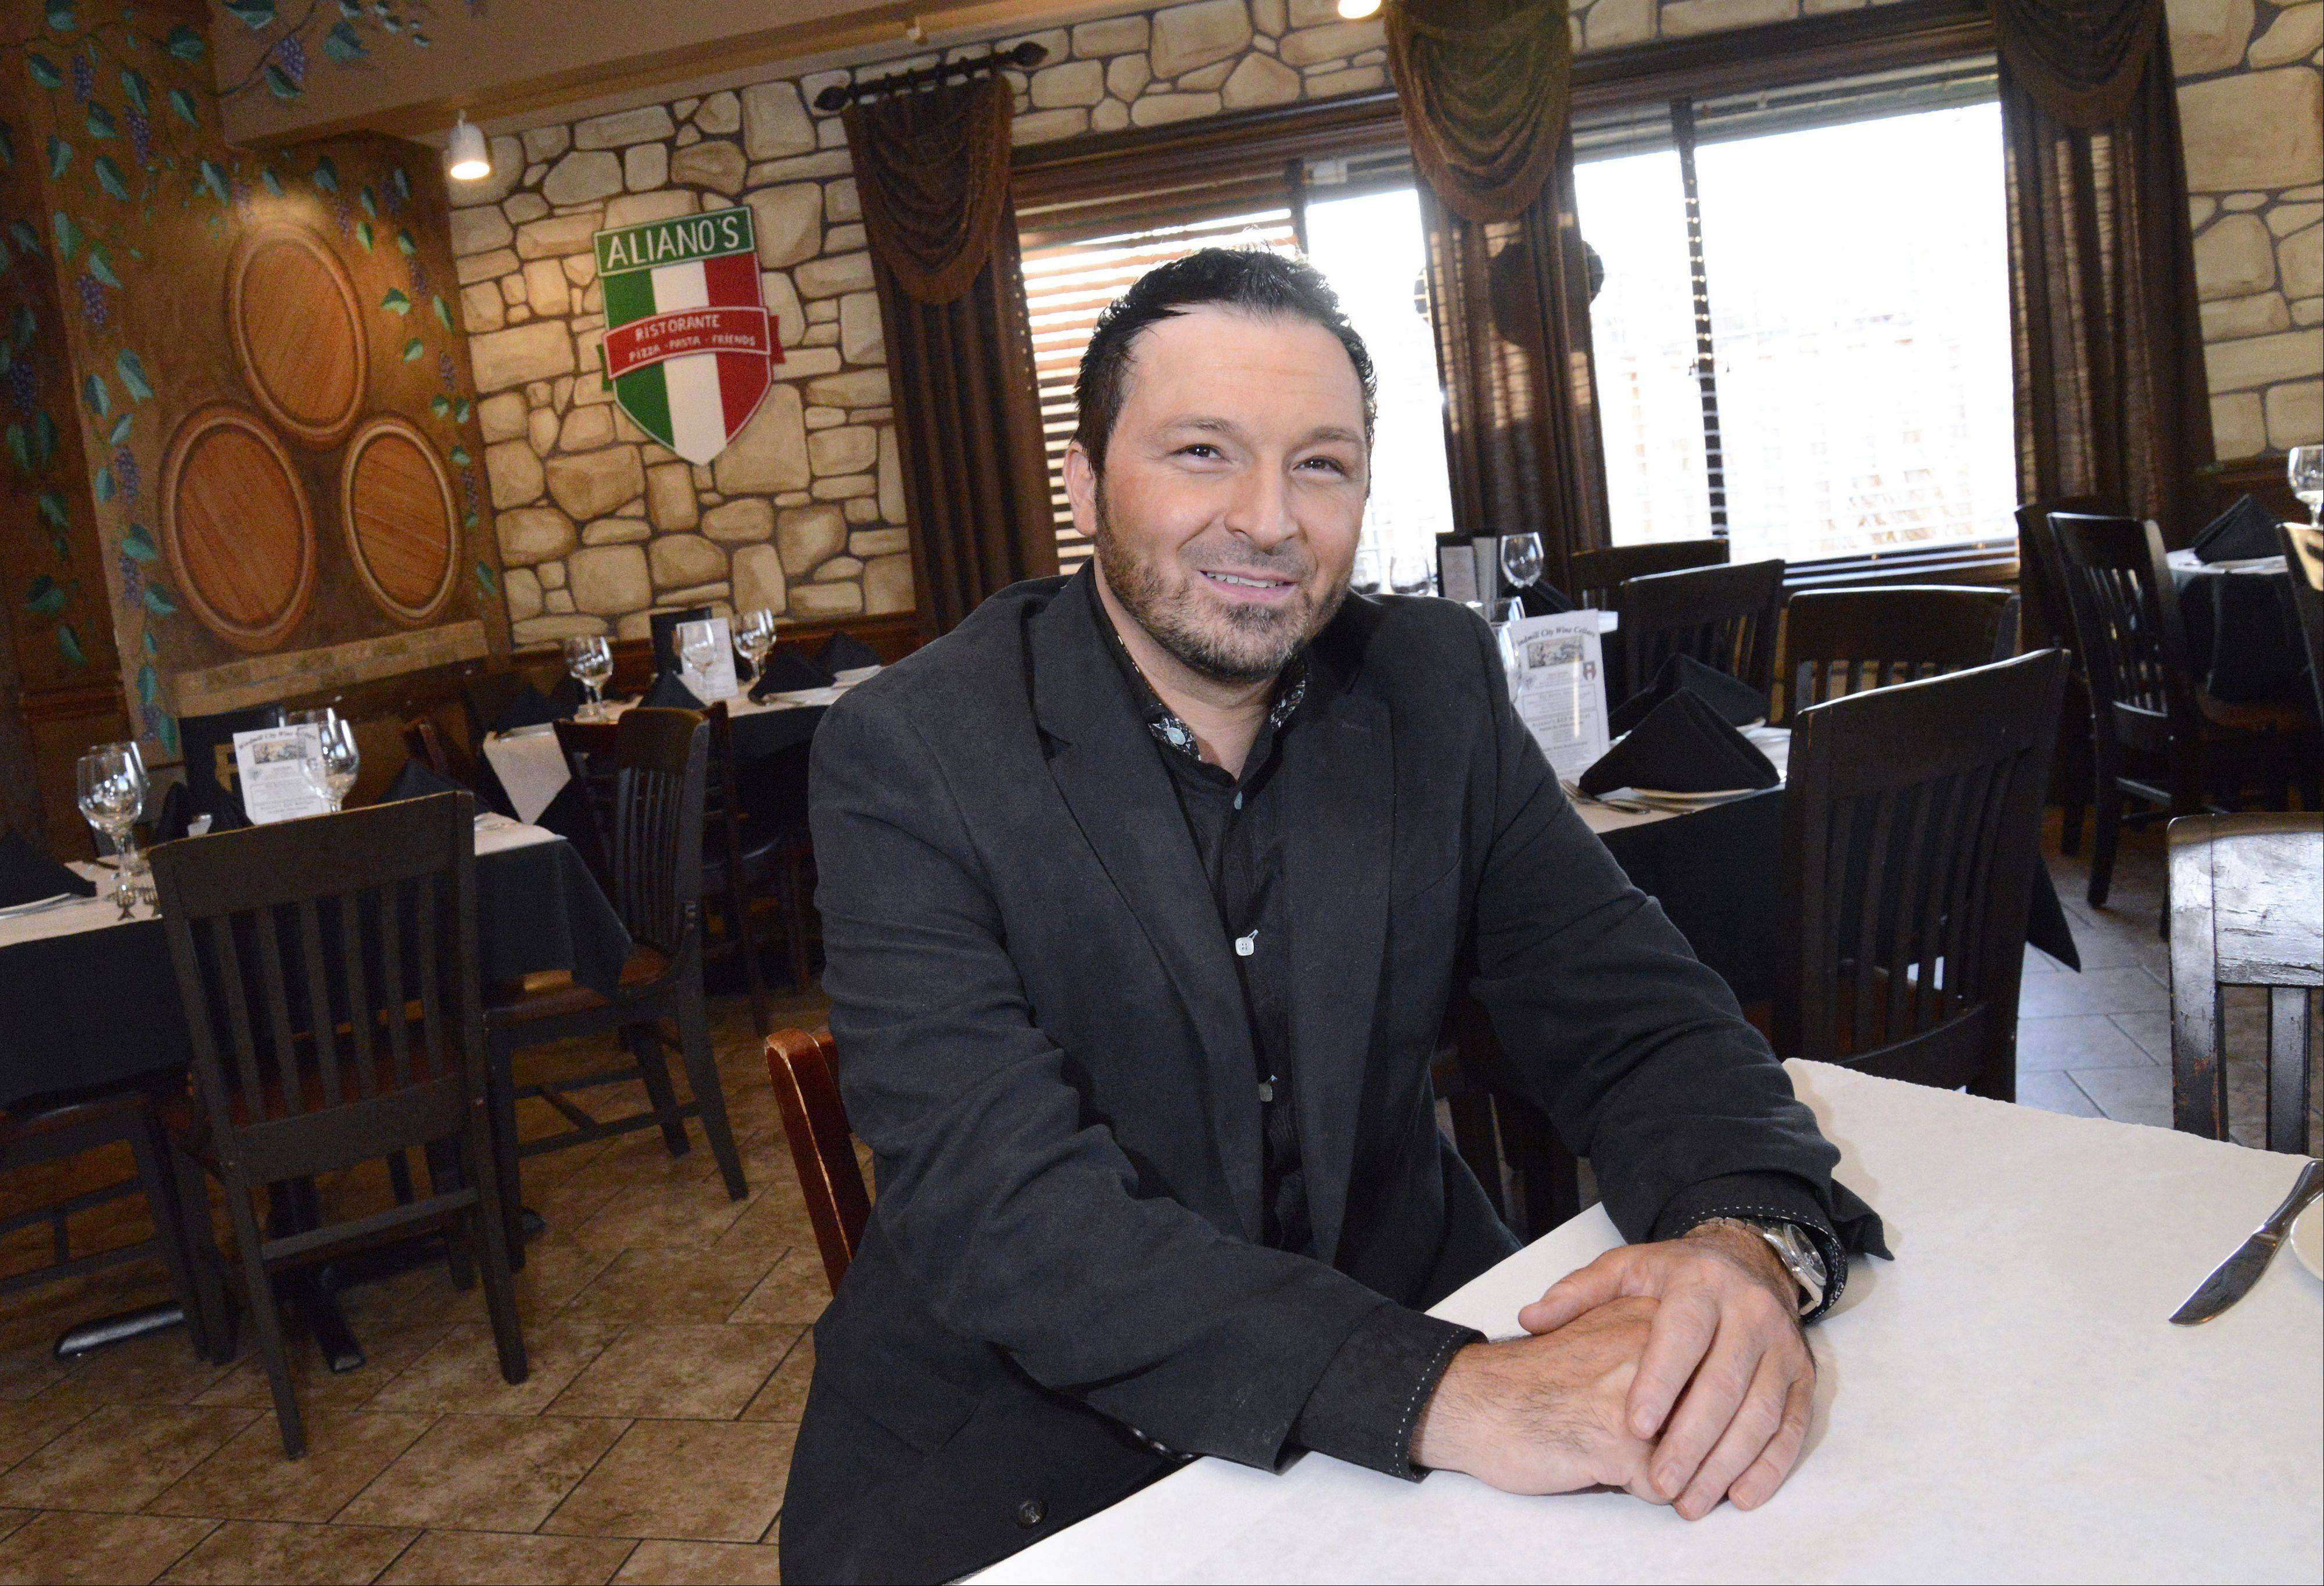 Mario Aliano, owner of Aliano�s Ristorante in Batavia, is offering free meals to senior citizens from noon to 3 p.m. Thanksgiving Day. He said it�s his way of saying thanks to the community that has supported the restaurant for the nearly two years it�s been open.